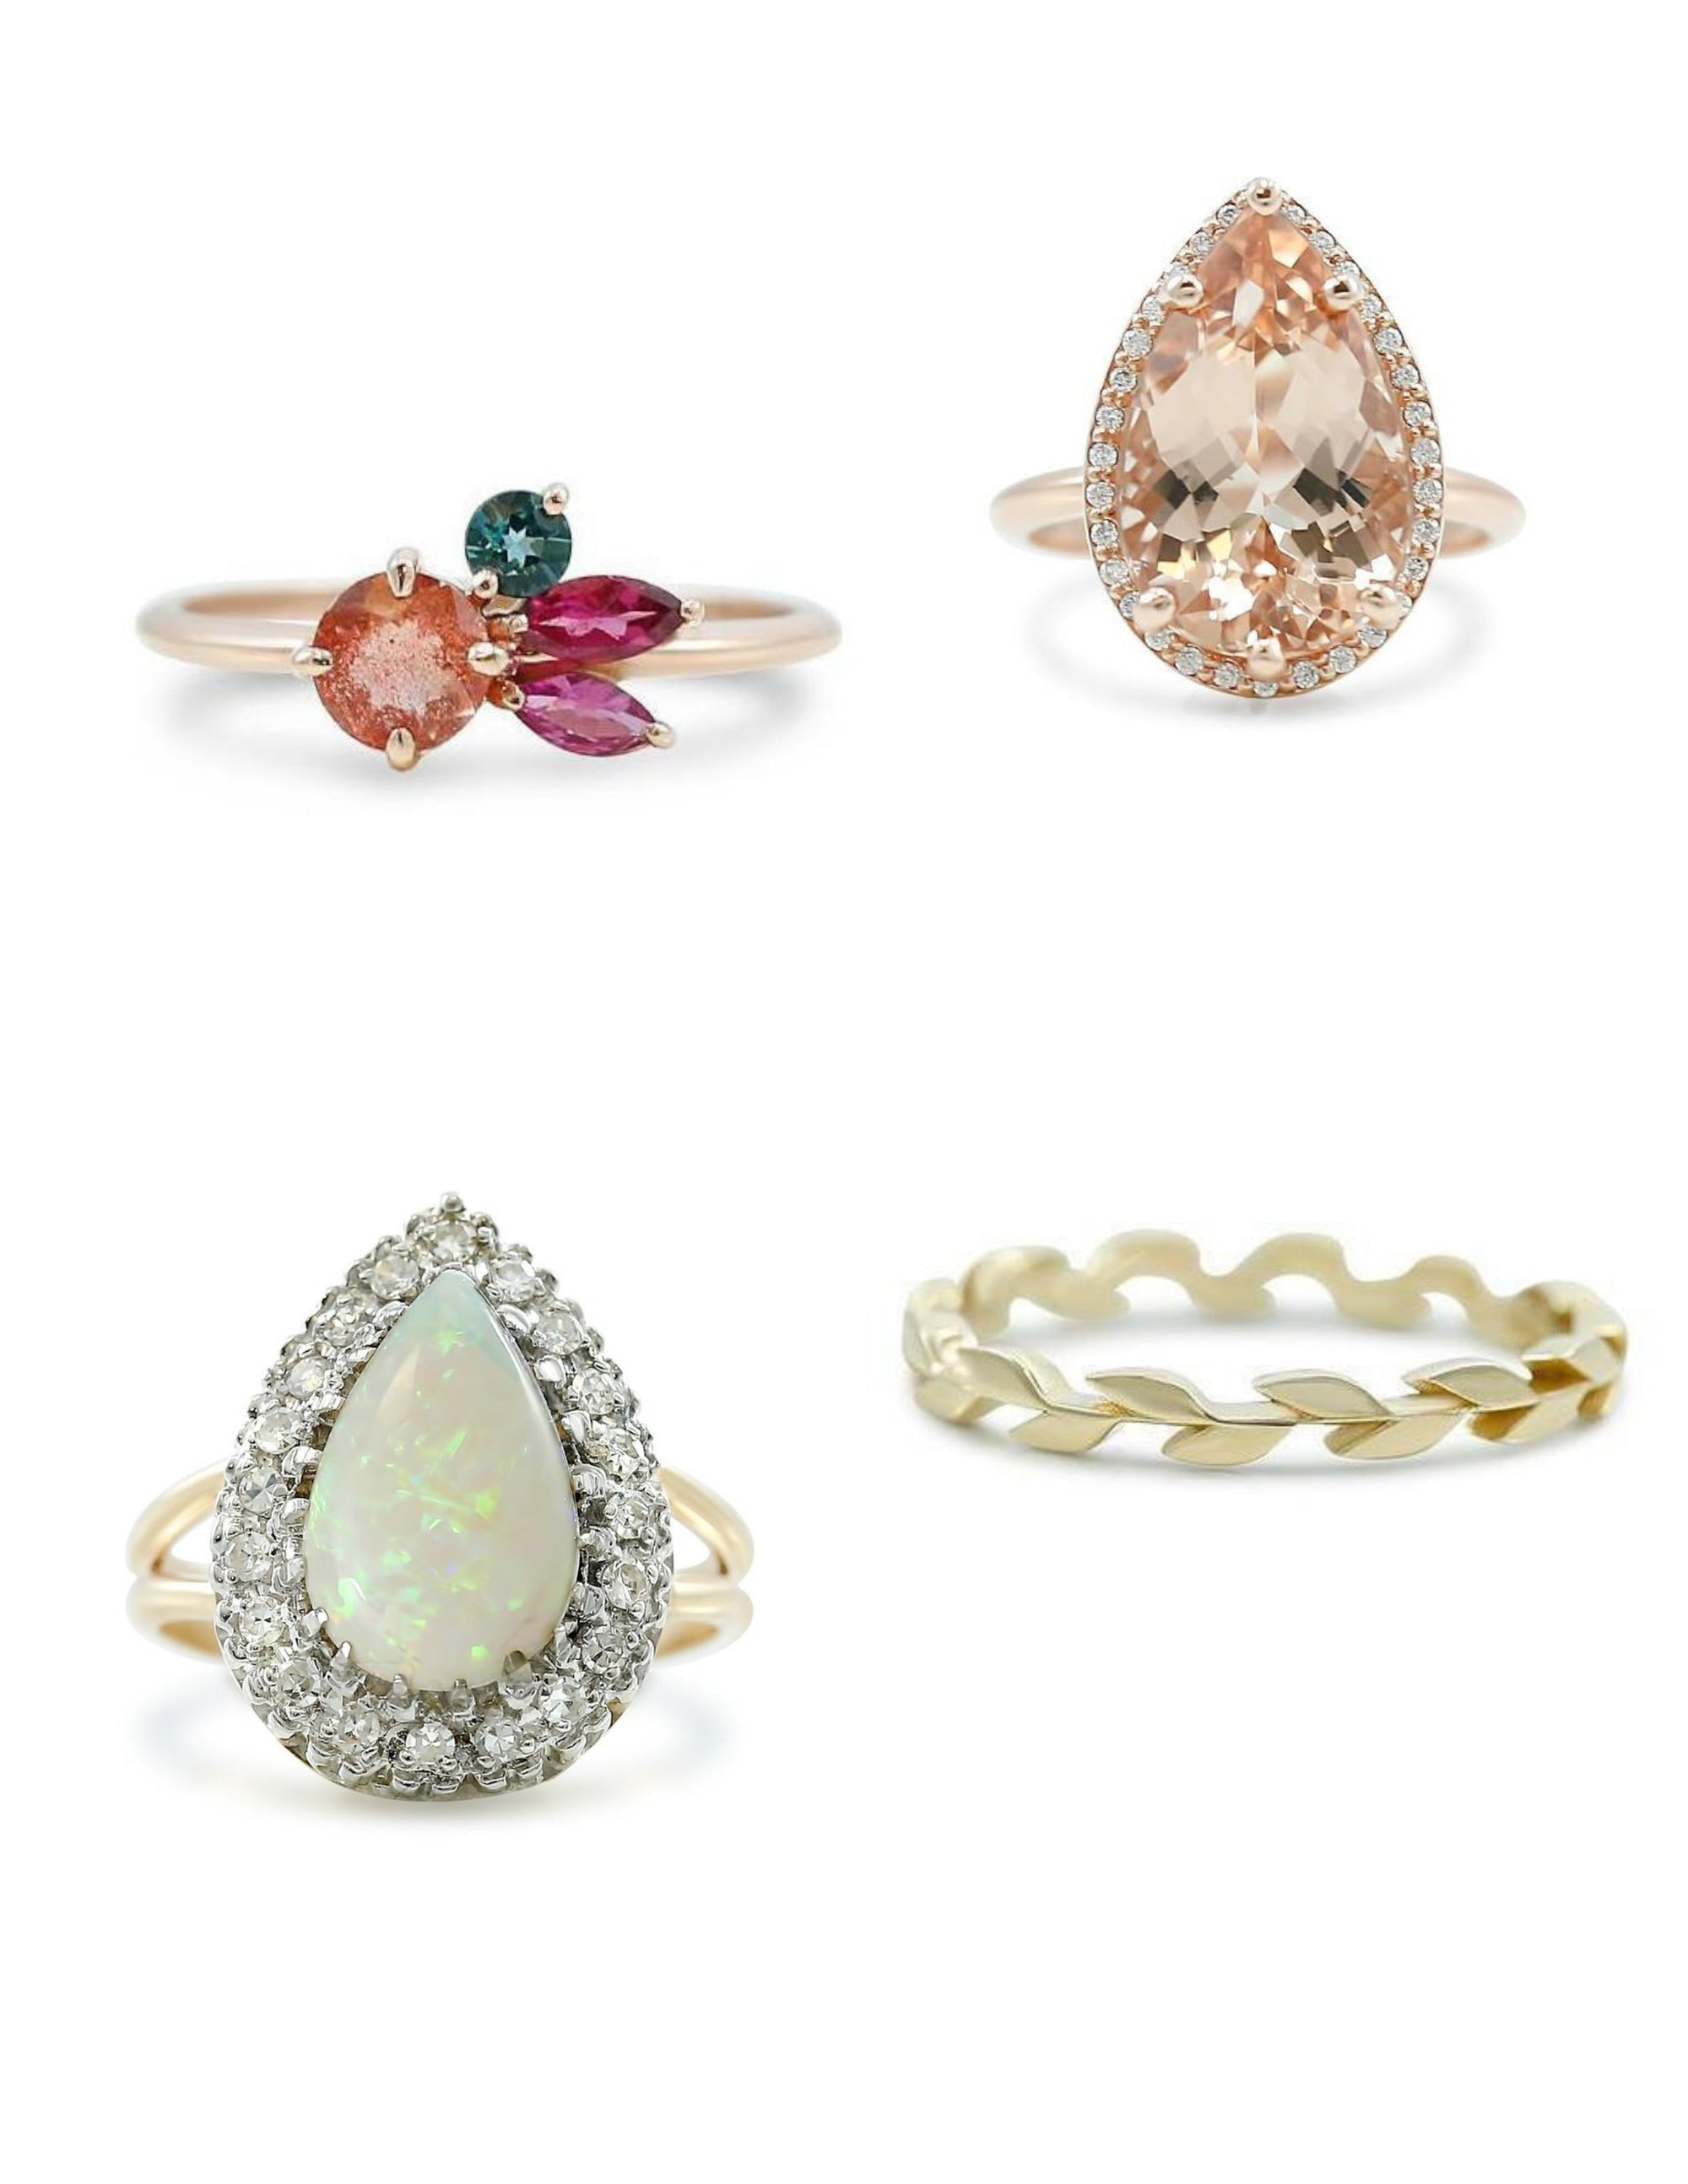 Which L. Priori Jewelry Ring is for you? | Philadelphia Jeweler Has Rings For Sale in Studio and Online